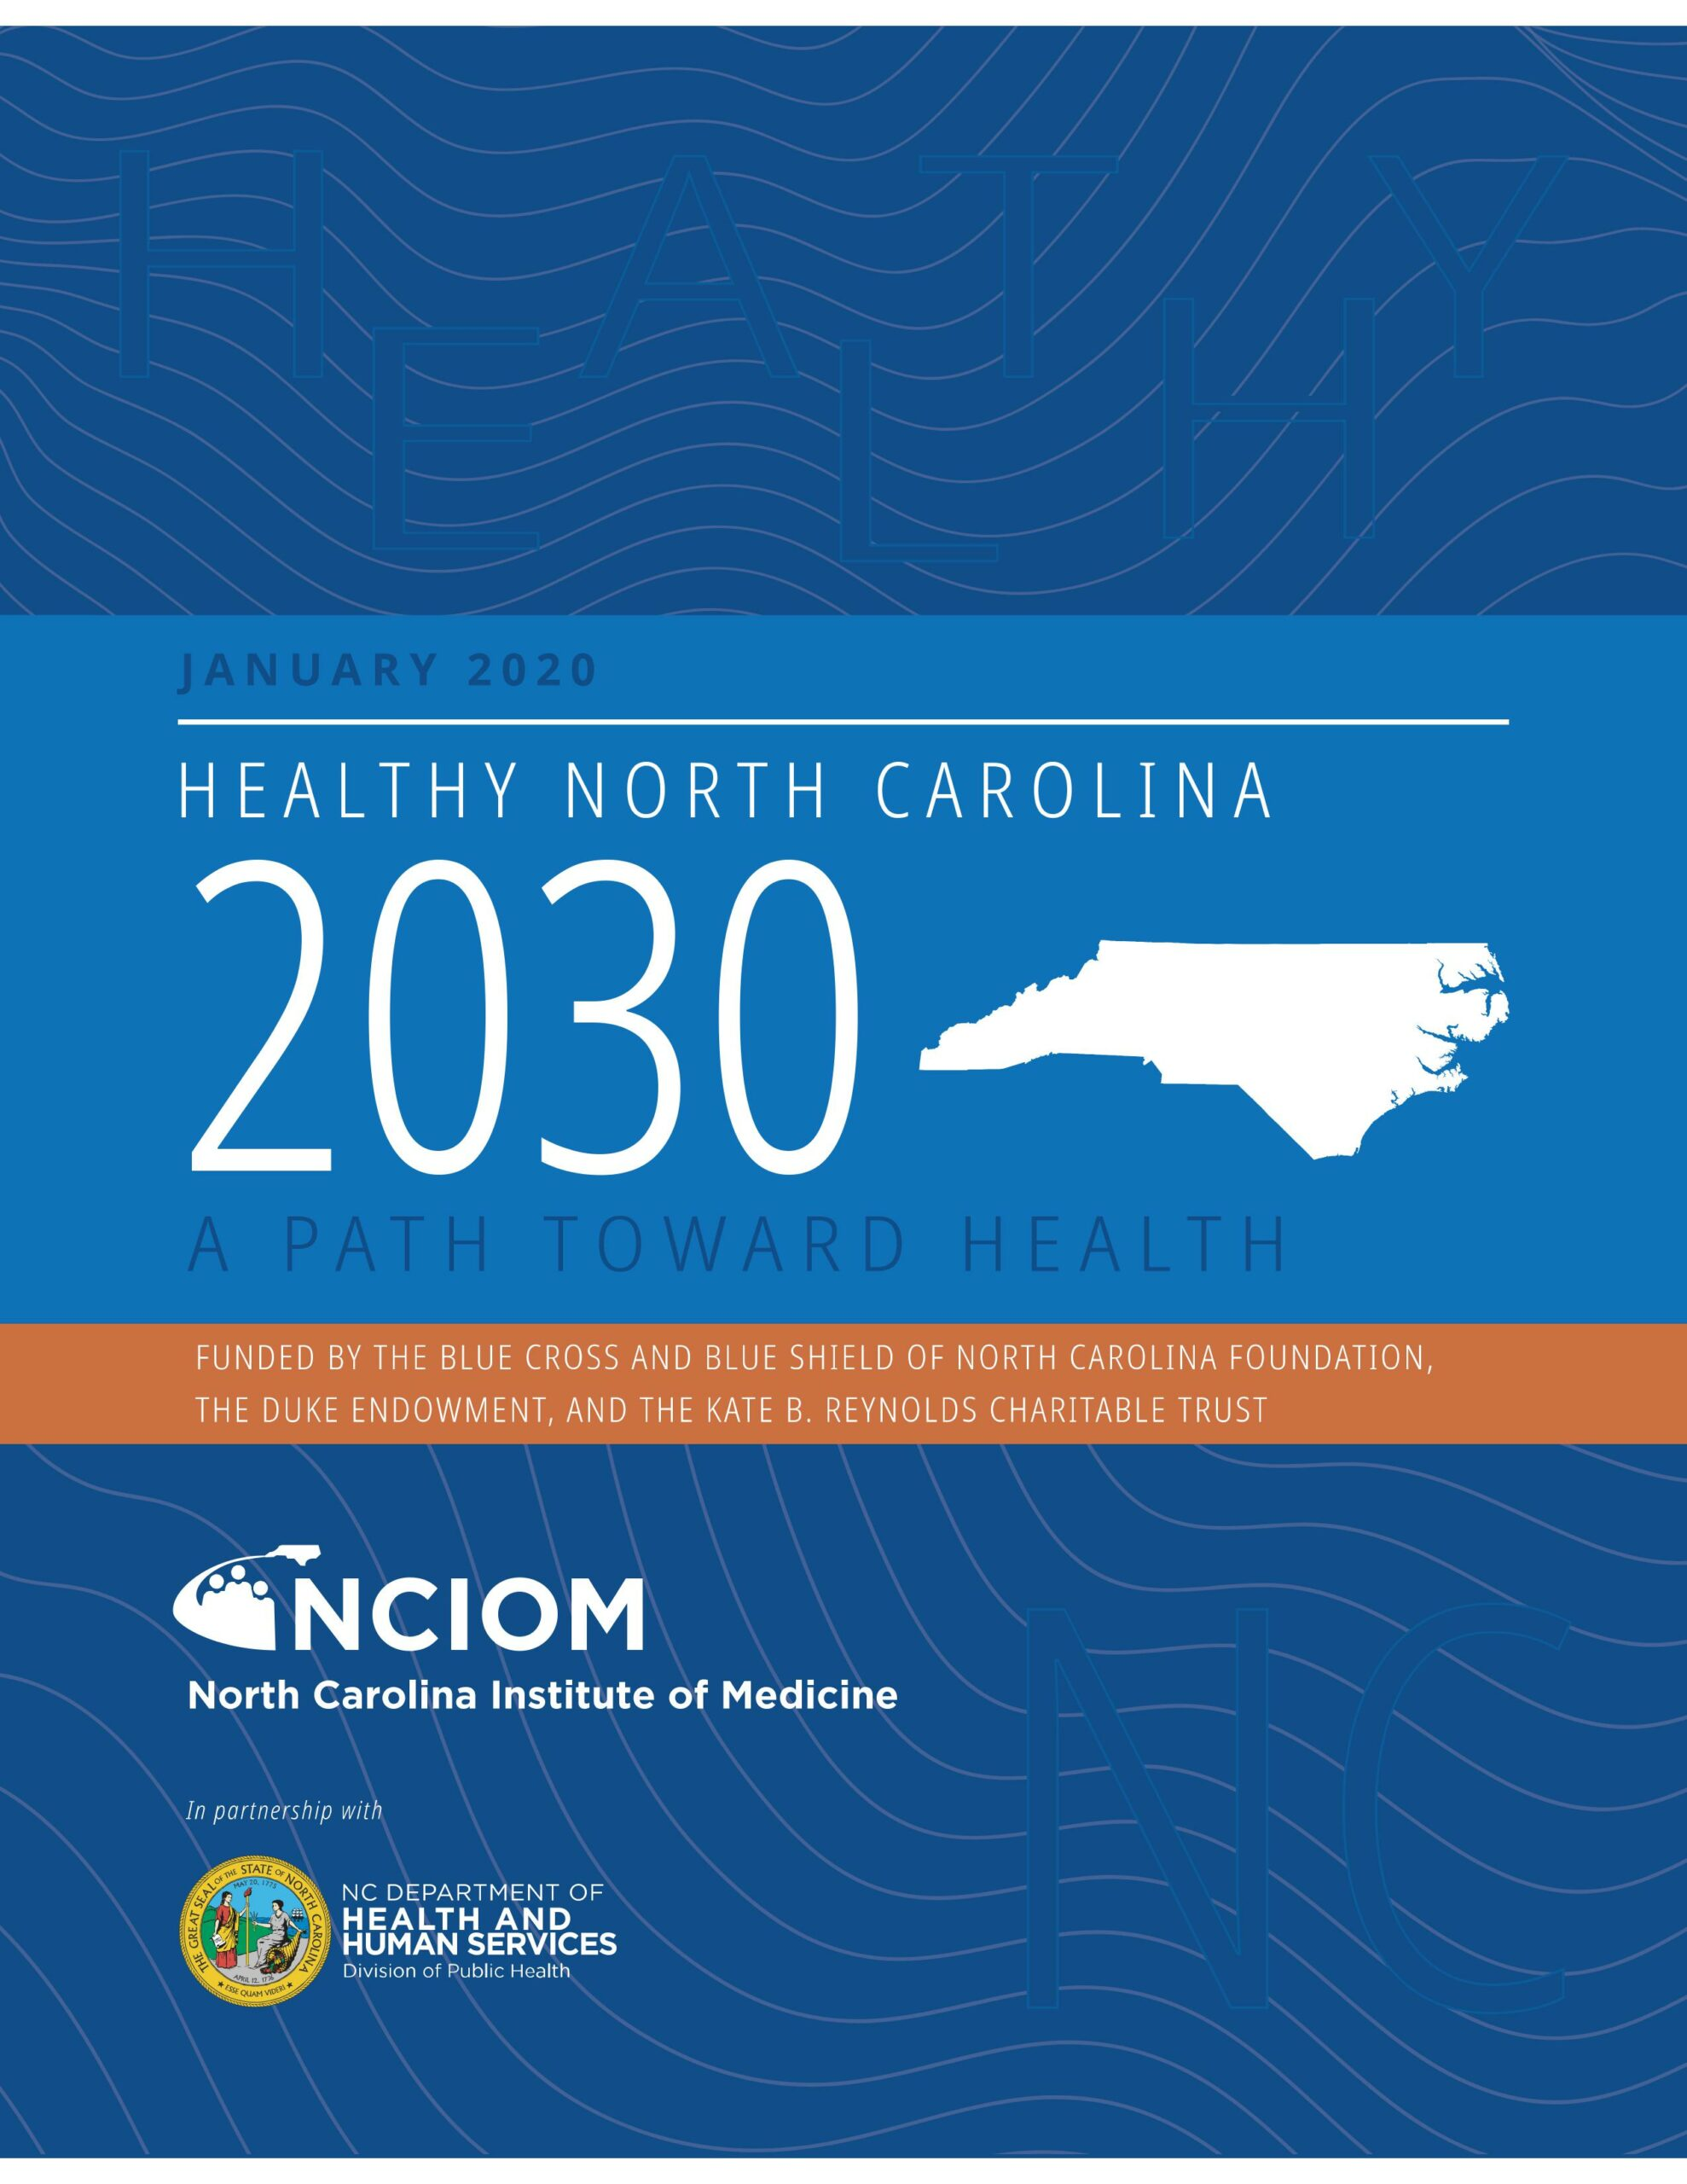 cover of HNC report that says Healthy North Carolina 2030 and has an image of the state